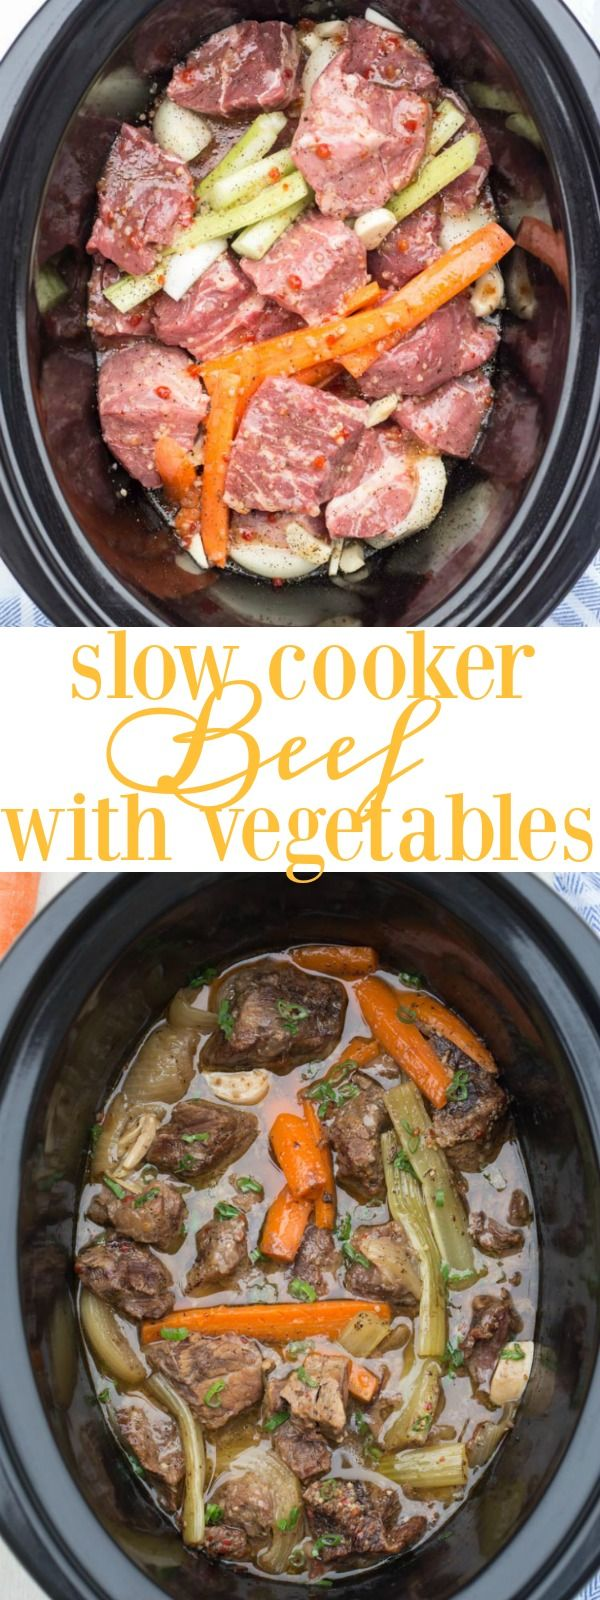 Beef in slow cooker (Crock-pot) with vegetables. Melt in your mouth delicious.